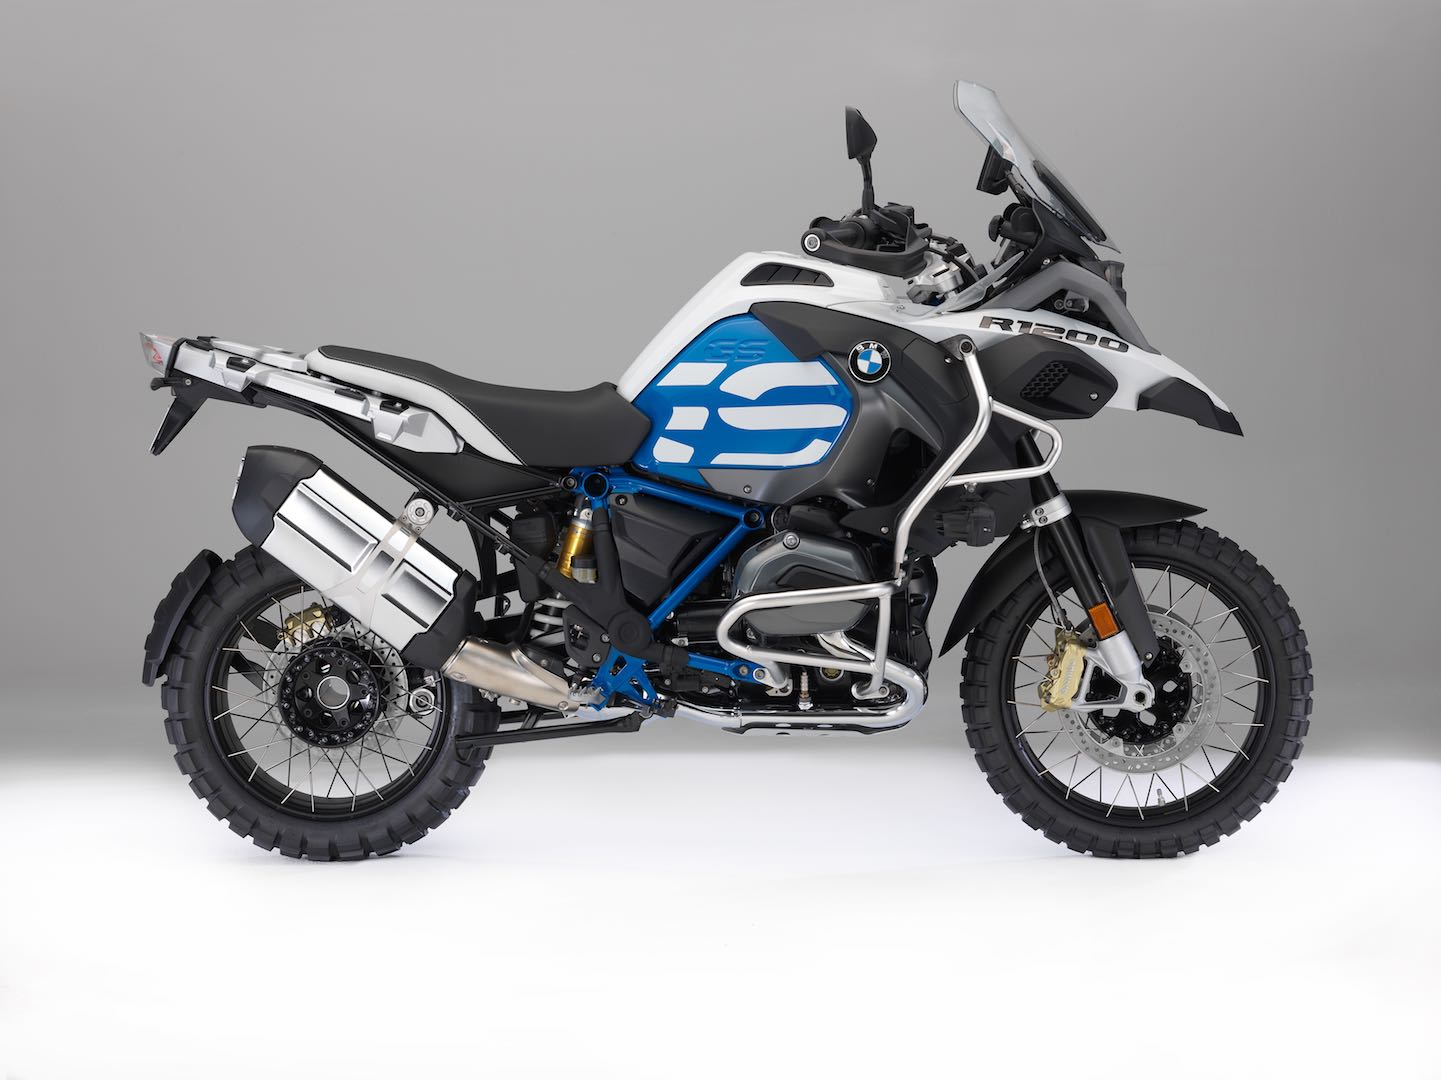 2018 BMW R 1200 GS Adventure Buyer's Guide | Specs & Price